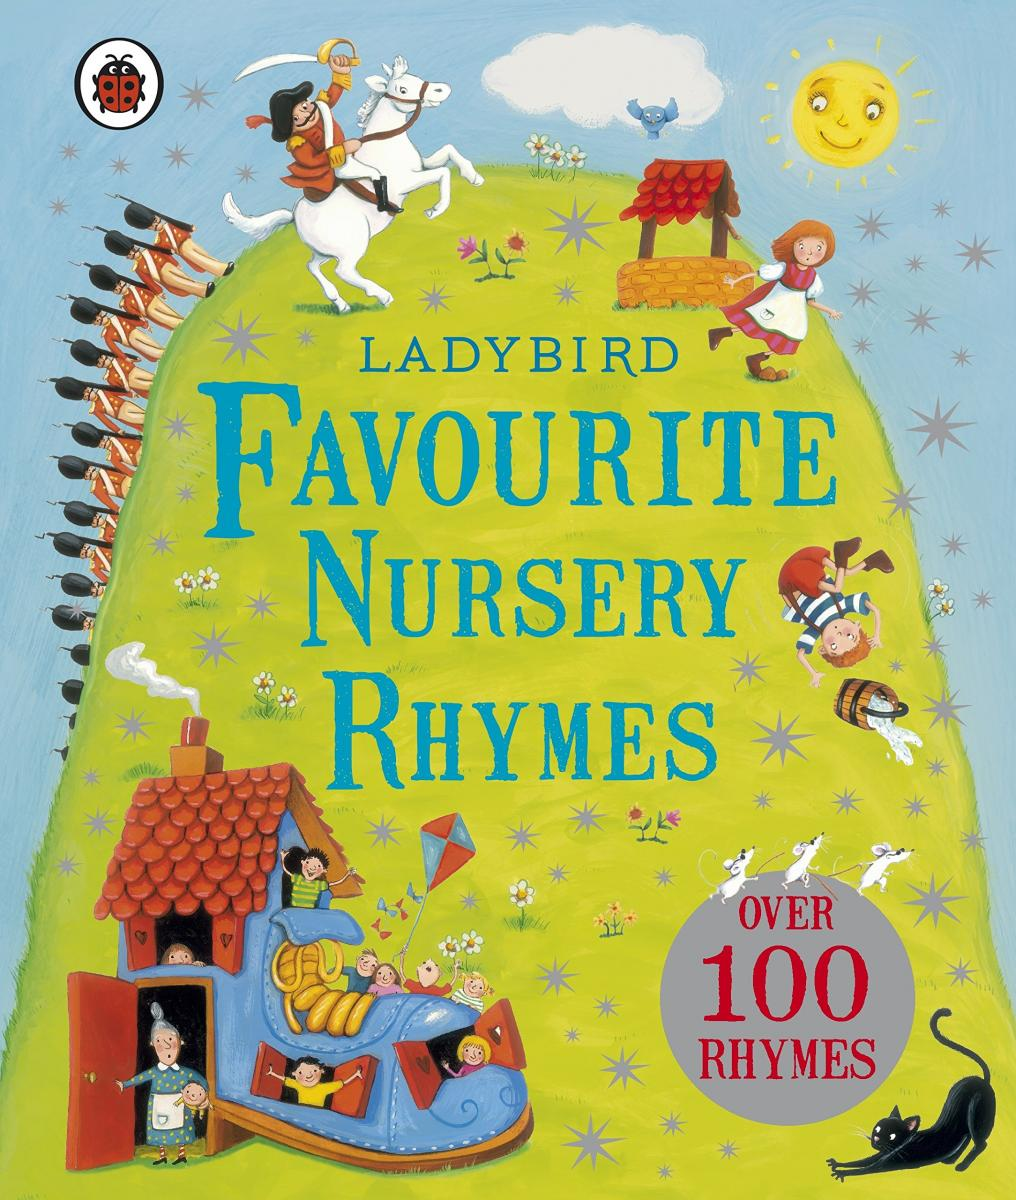 favourite bedtime nursery rhymes -